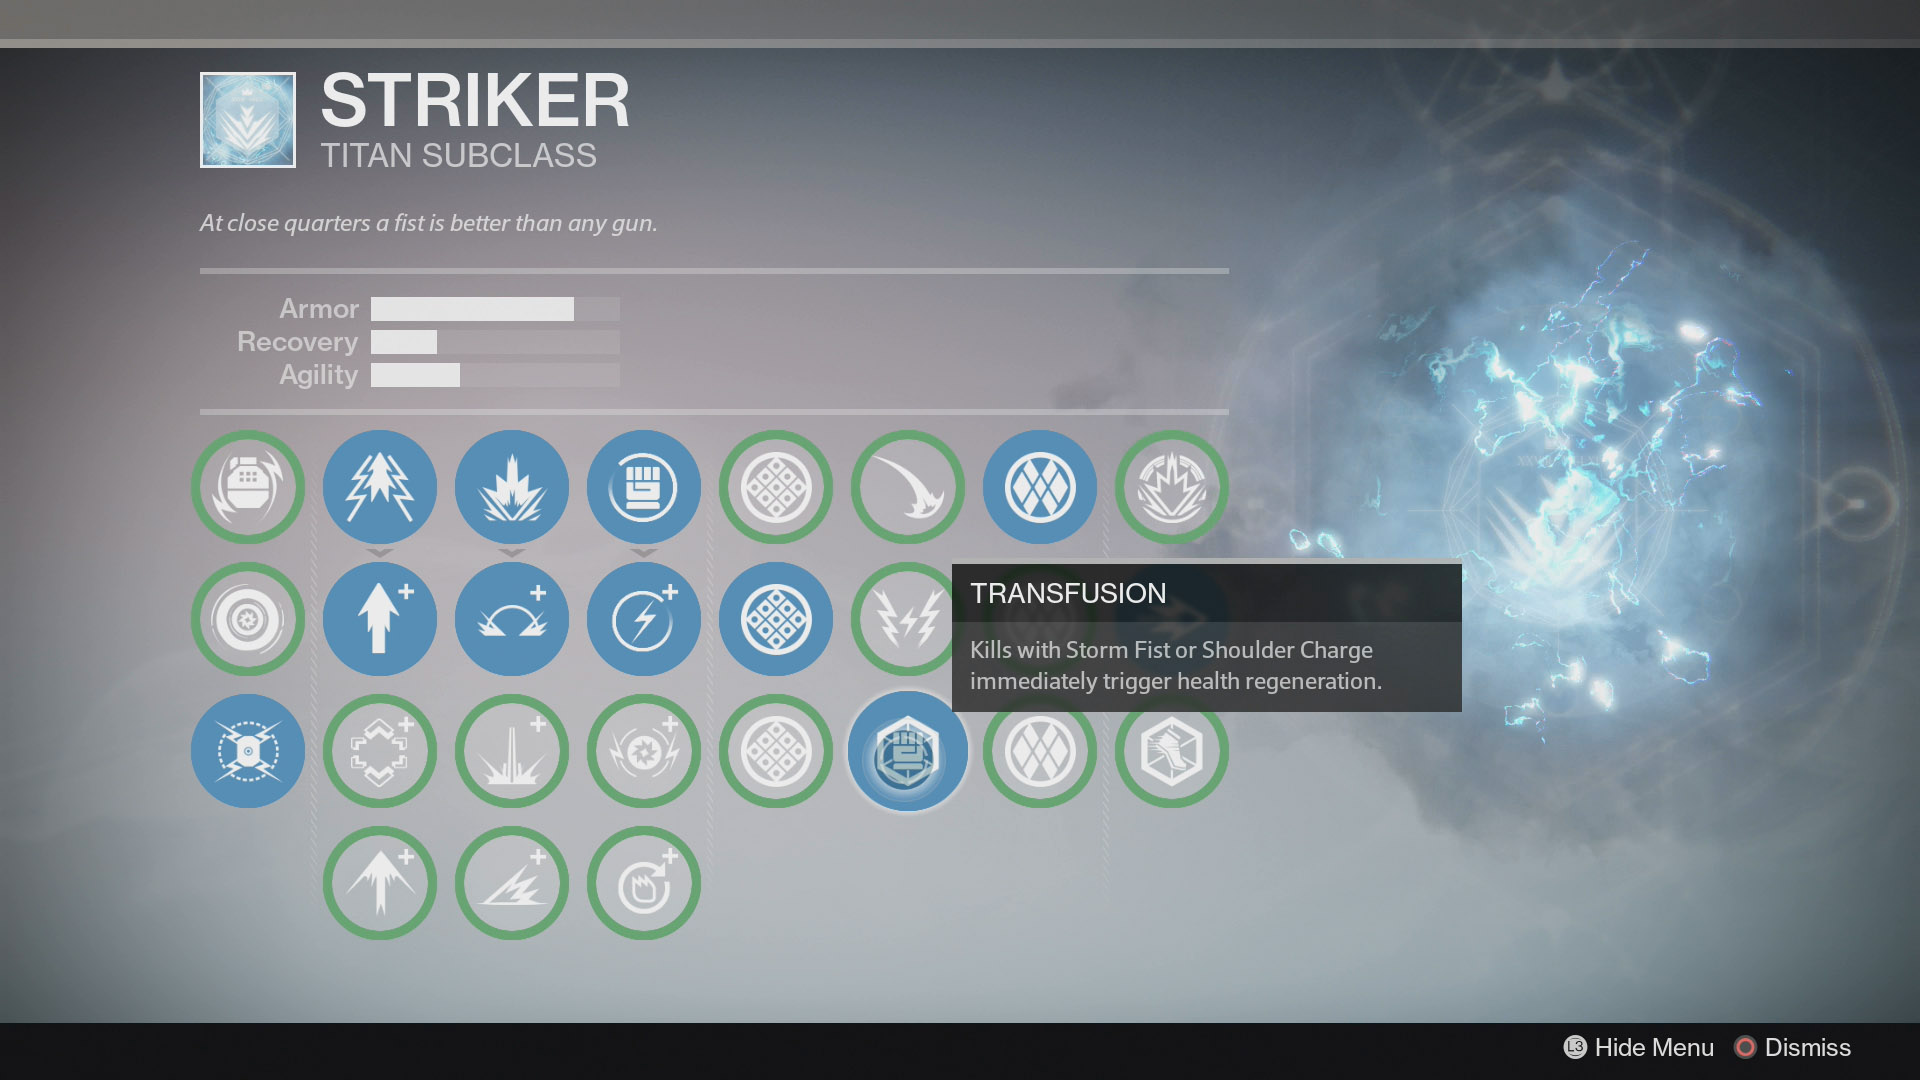 Destiny Striker Transfusion